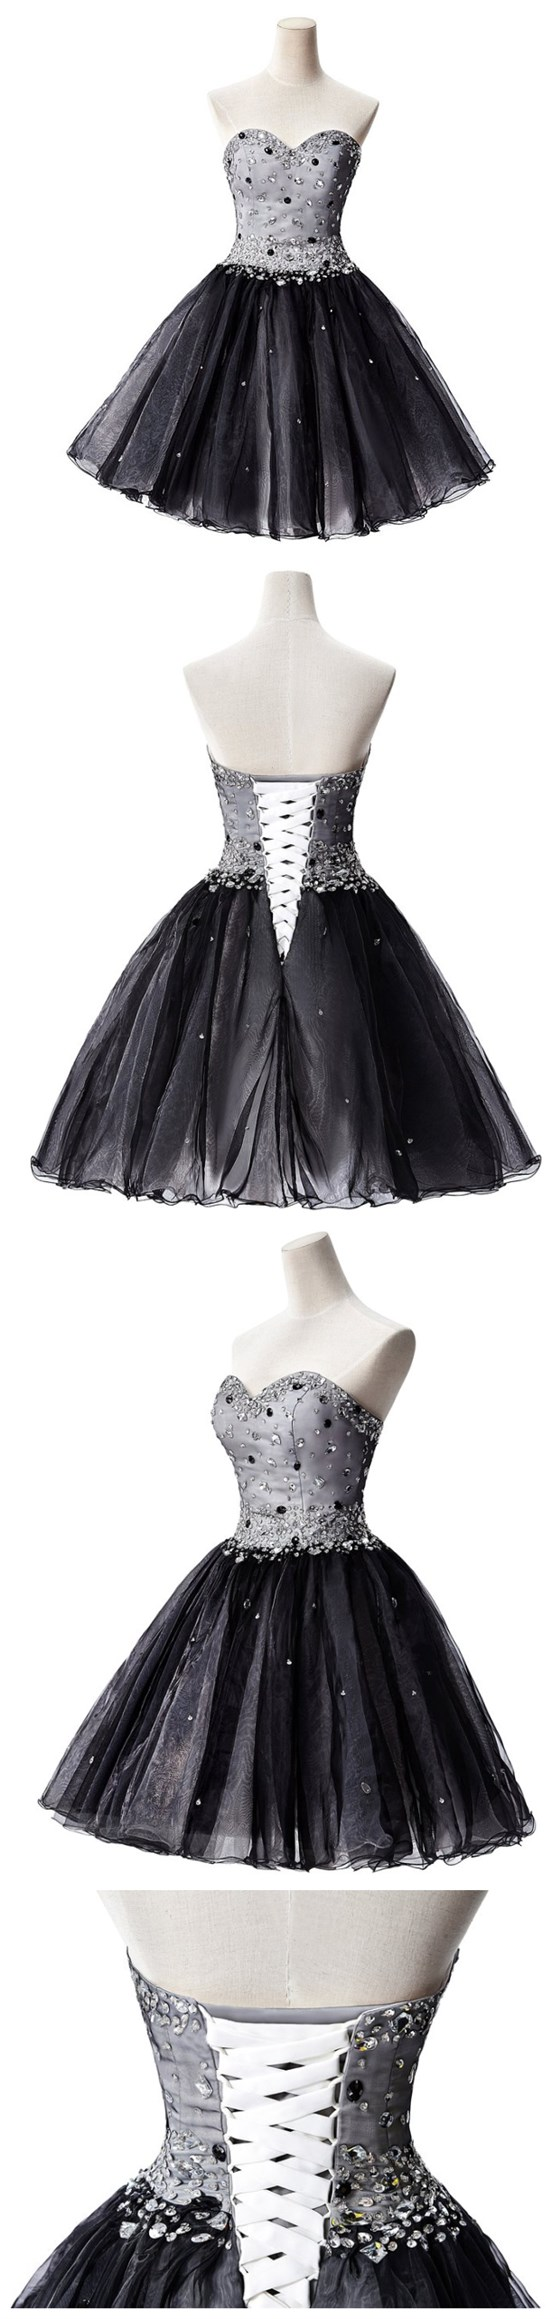 Homecoming dress short homecoming dress little black prom dress